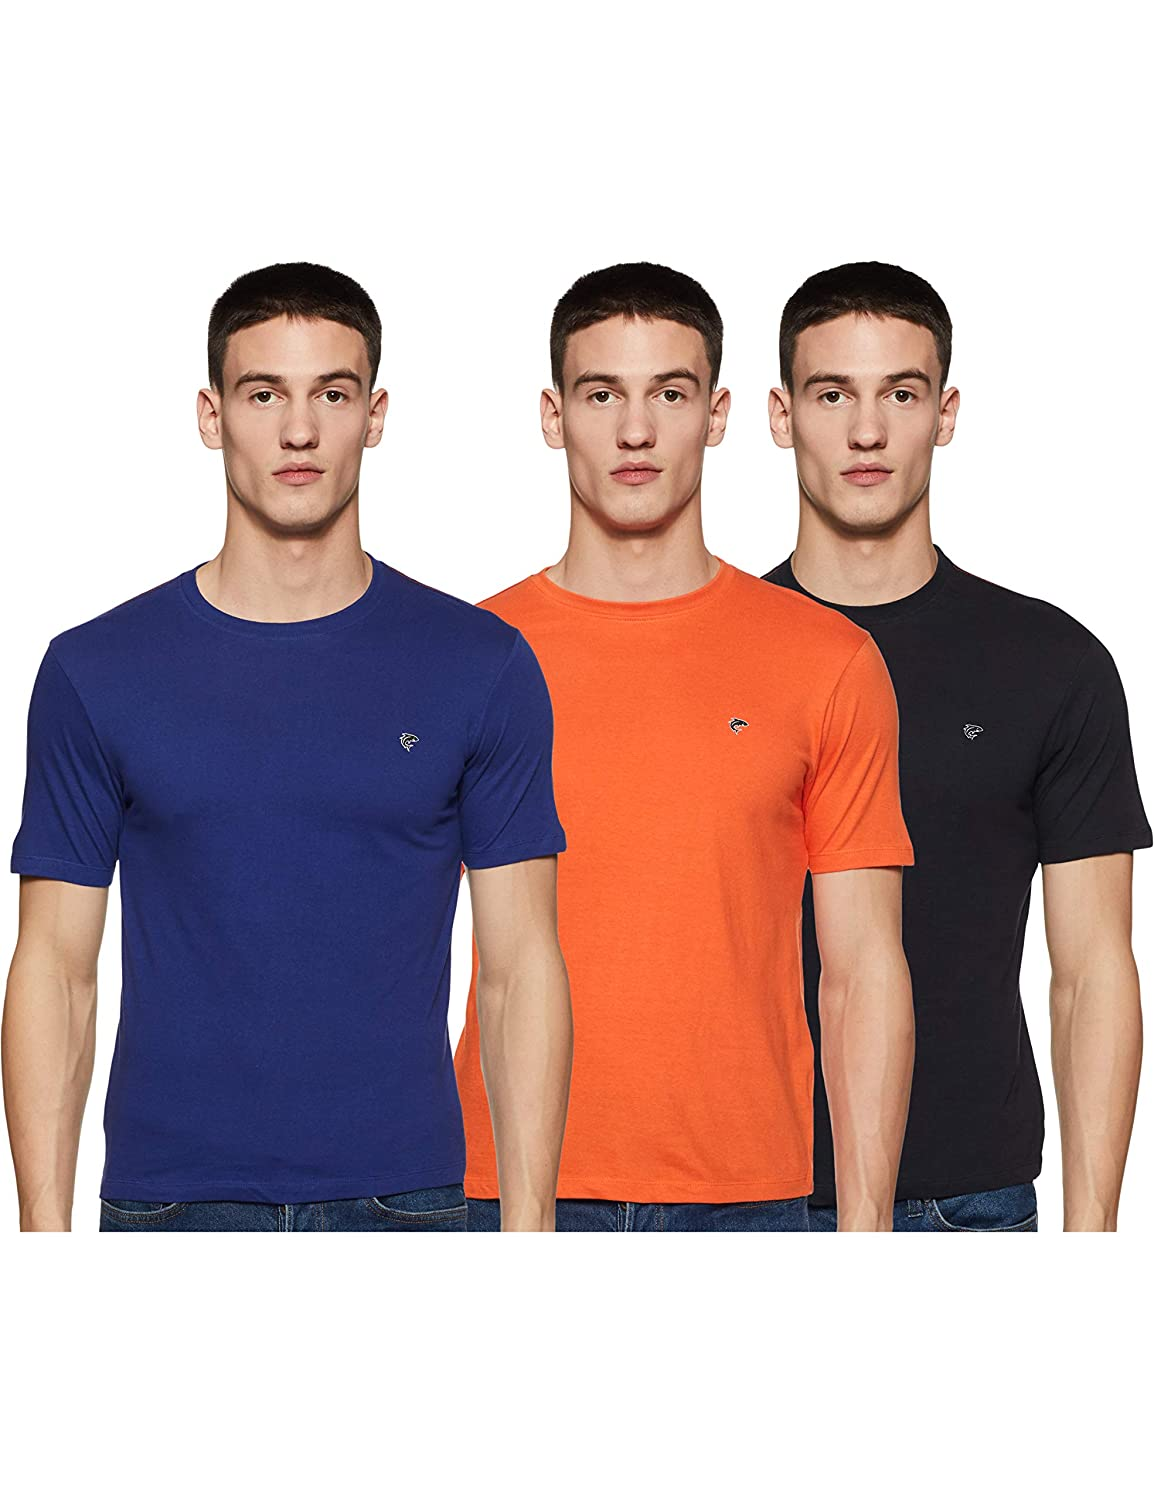 Ruggers Men's T-Shirt (Pack of 3) from Rs.279 at Amazon